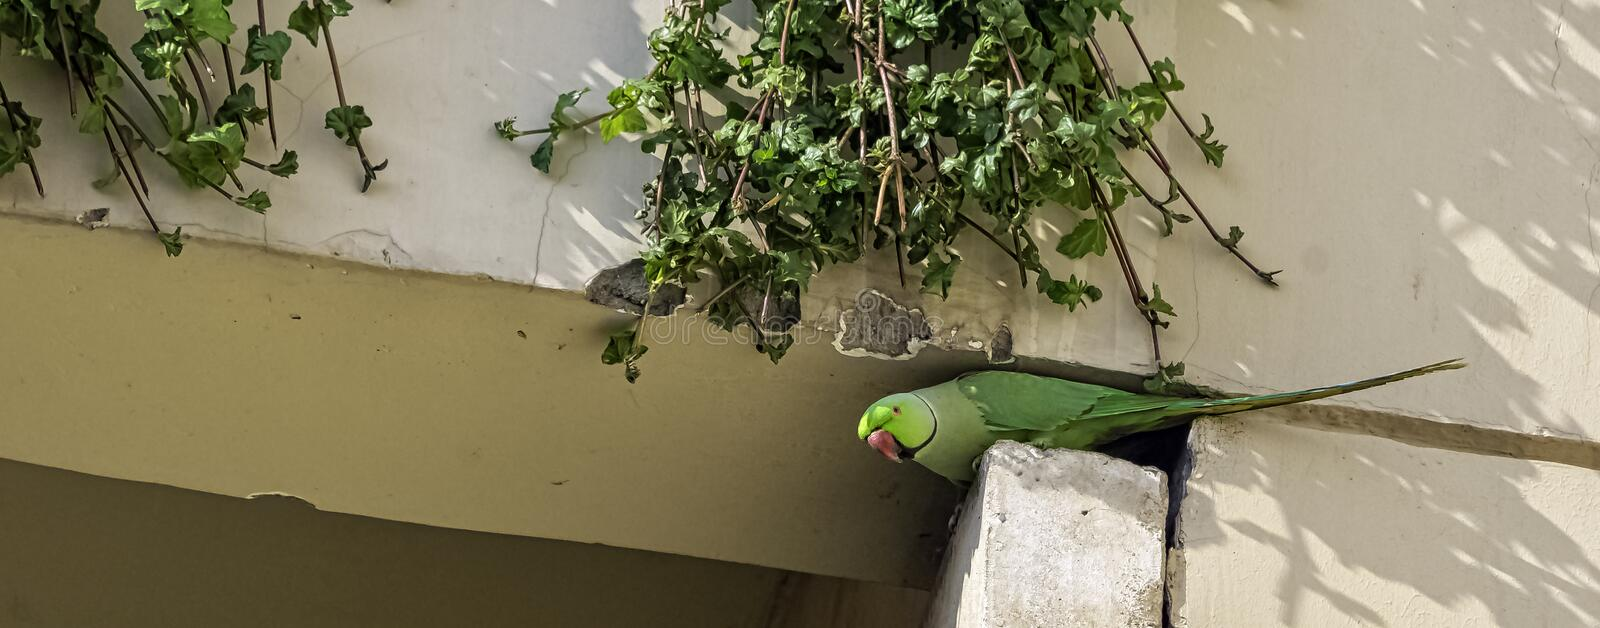 Indian rose-ringed parakeet, also known as the ring-necked parakeet - New Dekhi, India. Indian rose-ringed parakeet /Psittacula krameri manillensis/, also known stock photography